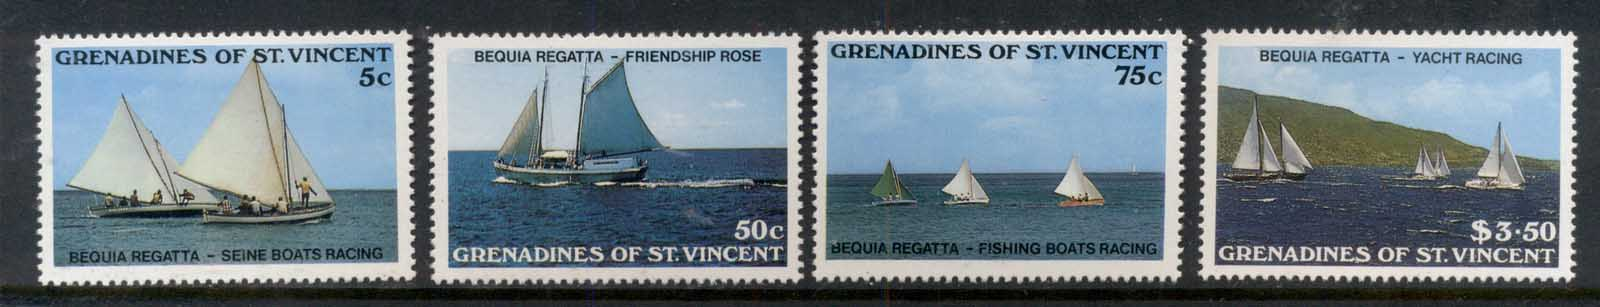 St Vincent Grenadines 1988 Yacht regatta MUH